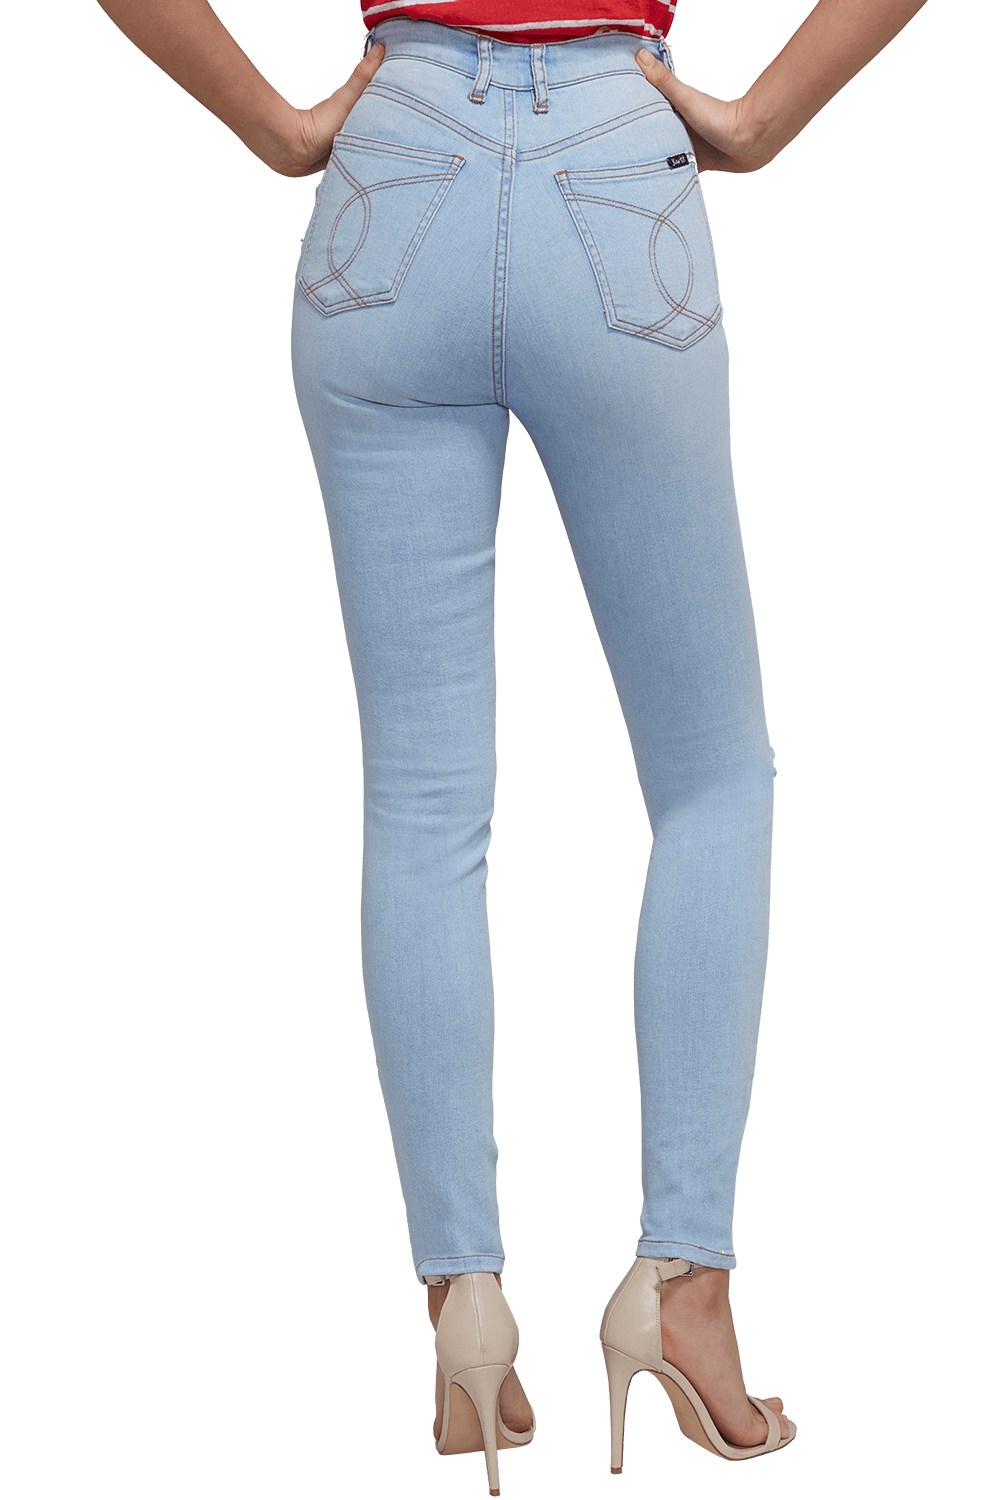 HOLLY HIGHEST RISE JEAN in colour CITADEL